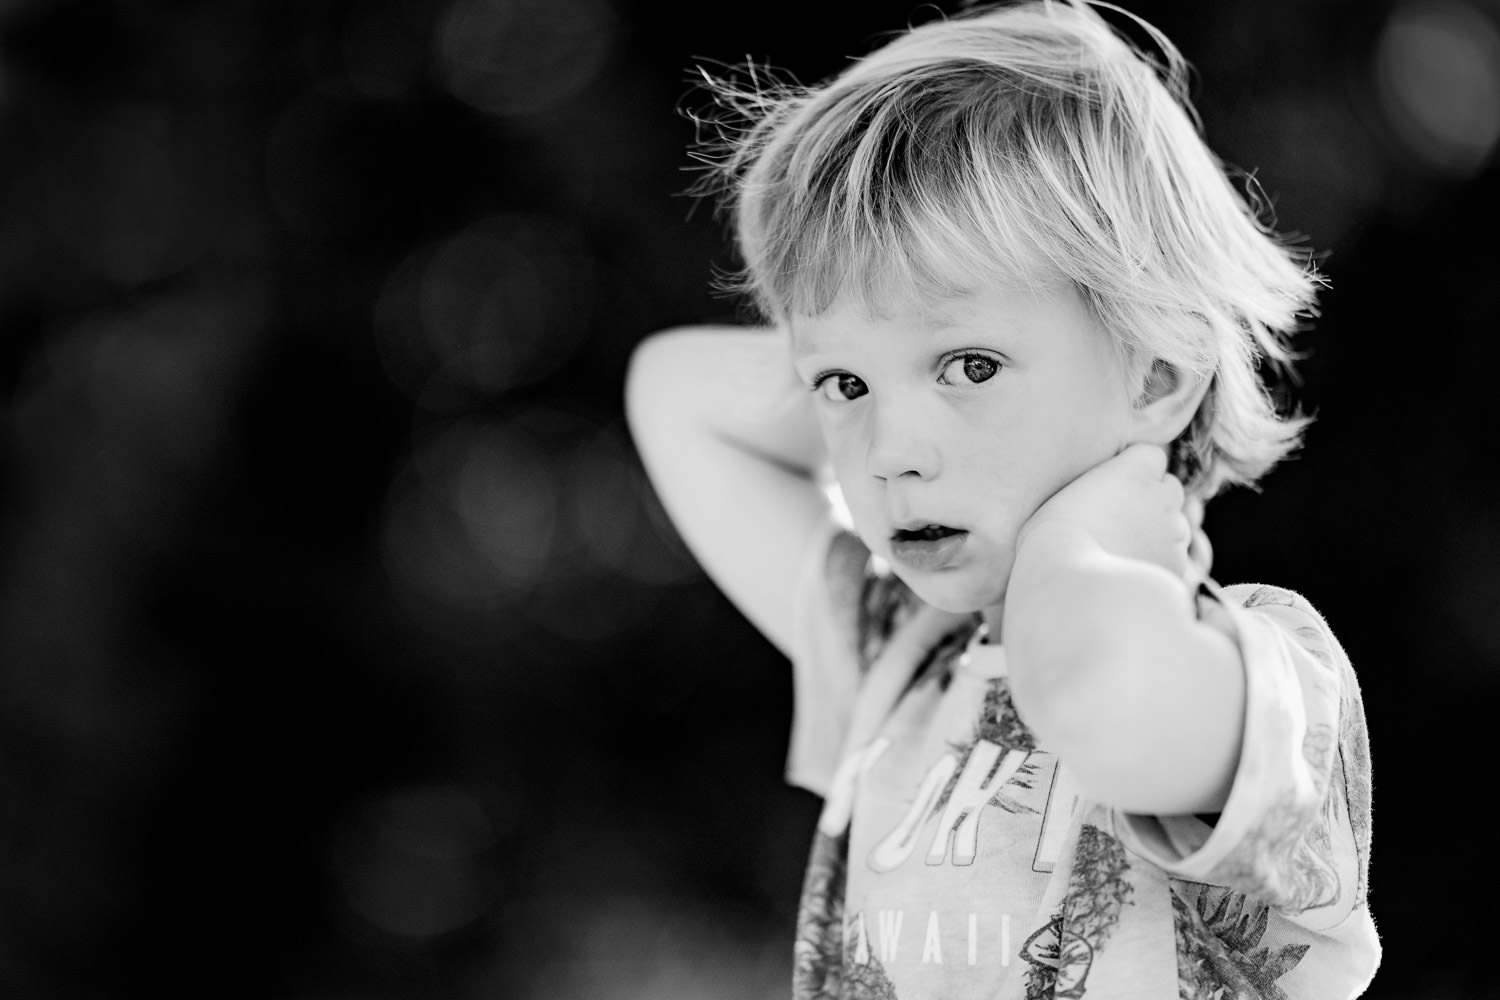 Boy looking emotional with arms behind head